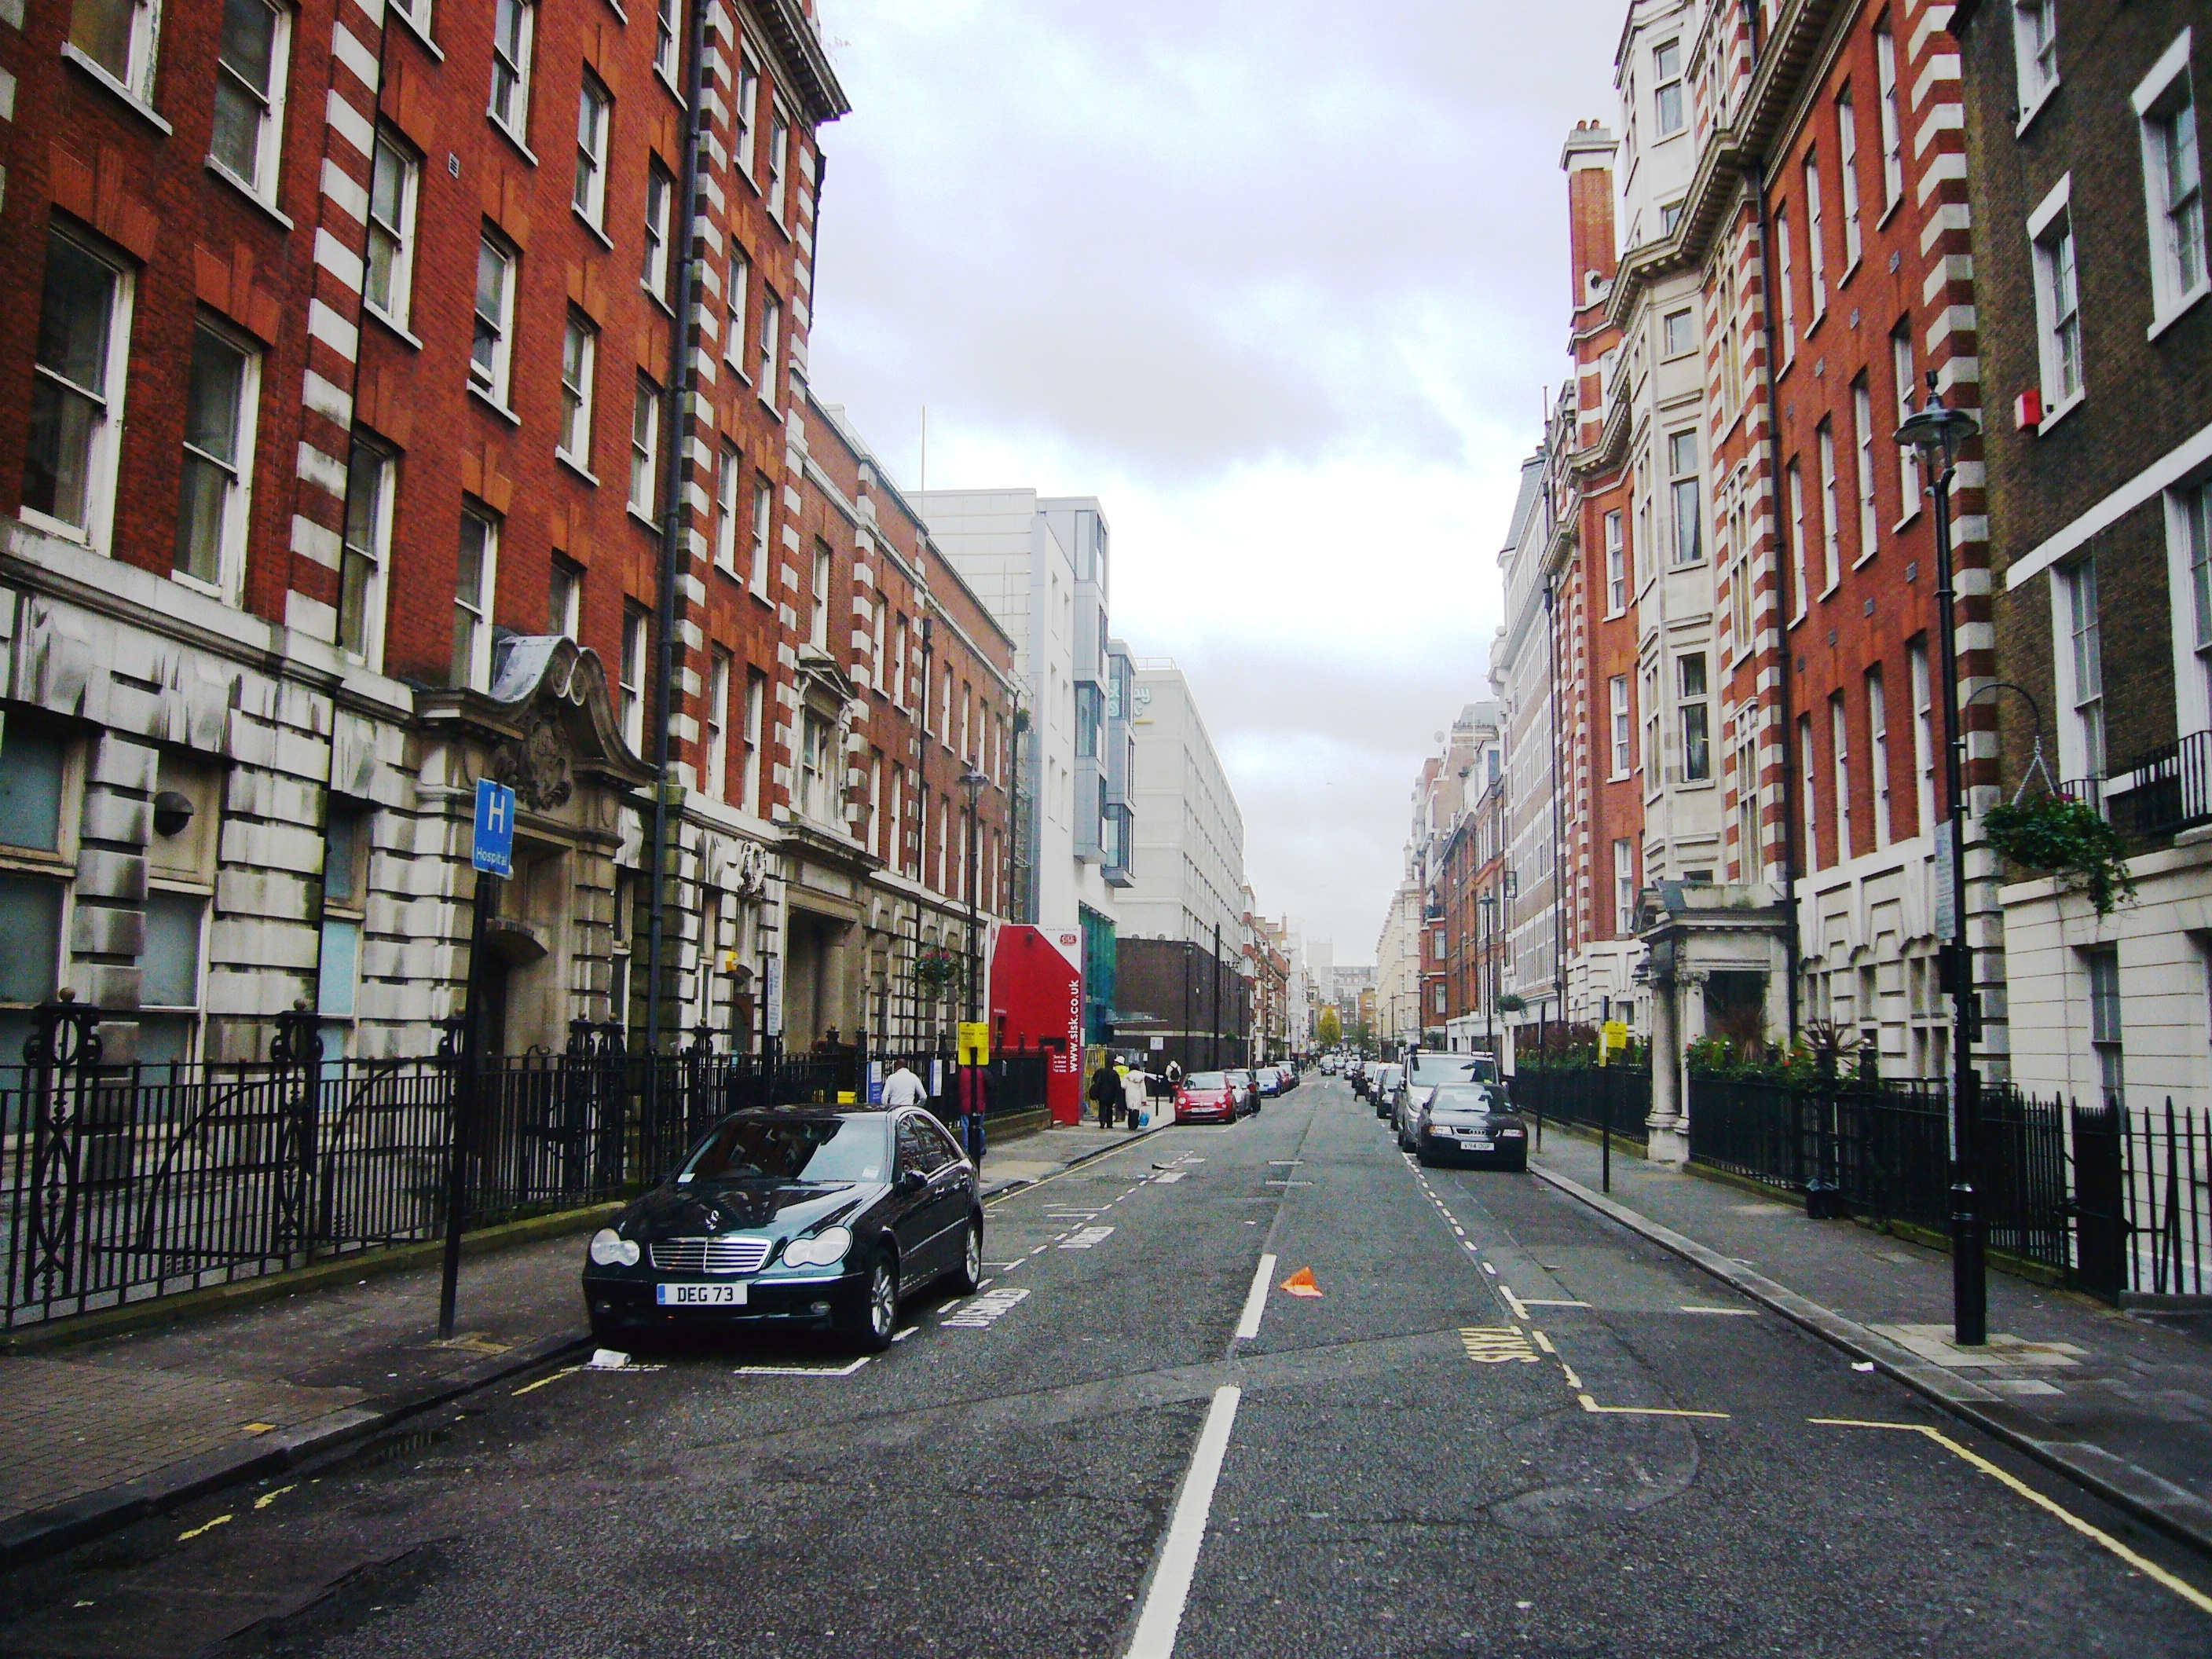 ... of Bolsover Street as seen from Great Portland Street Station (2009